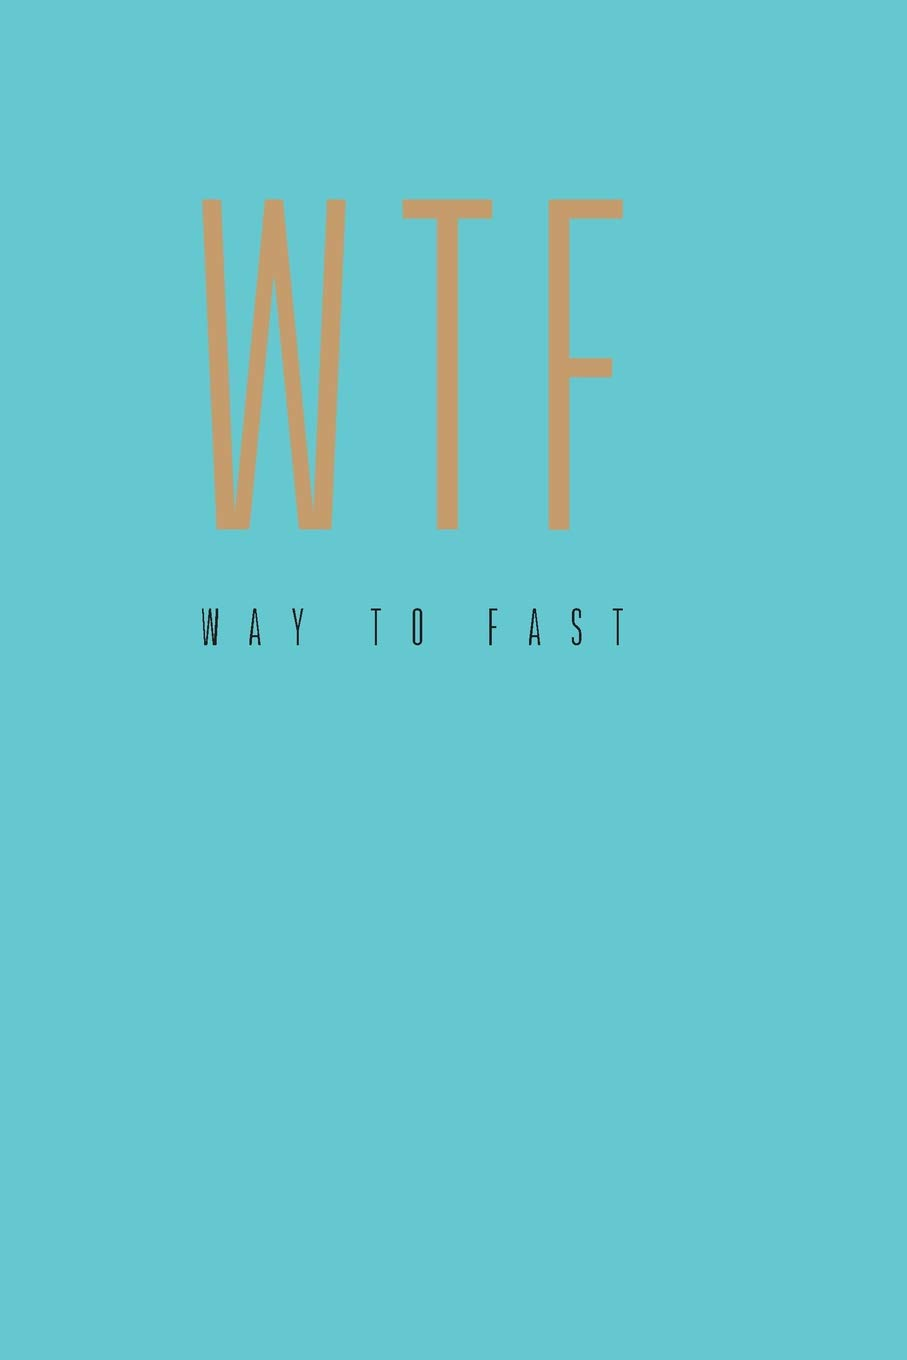 Way To Fast Is An Up To Date Journal Workbook With Quotes Songs Colouring To Help You Explore Premature Menopause Anxiety Osteoporosis Therapy Menopause Journey Wtf Way To Fast